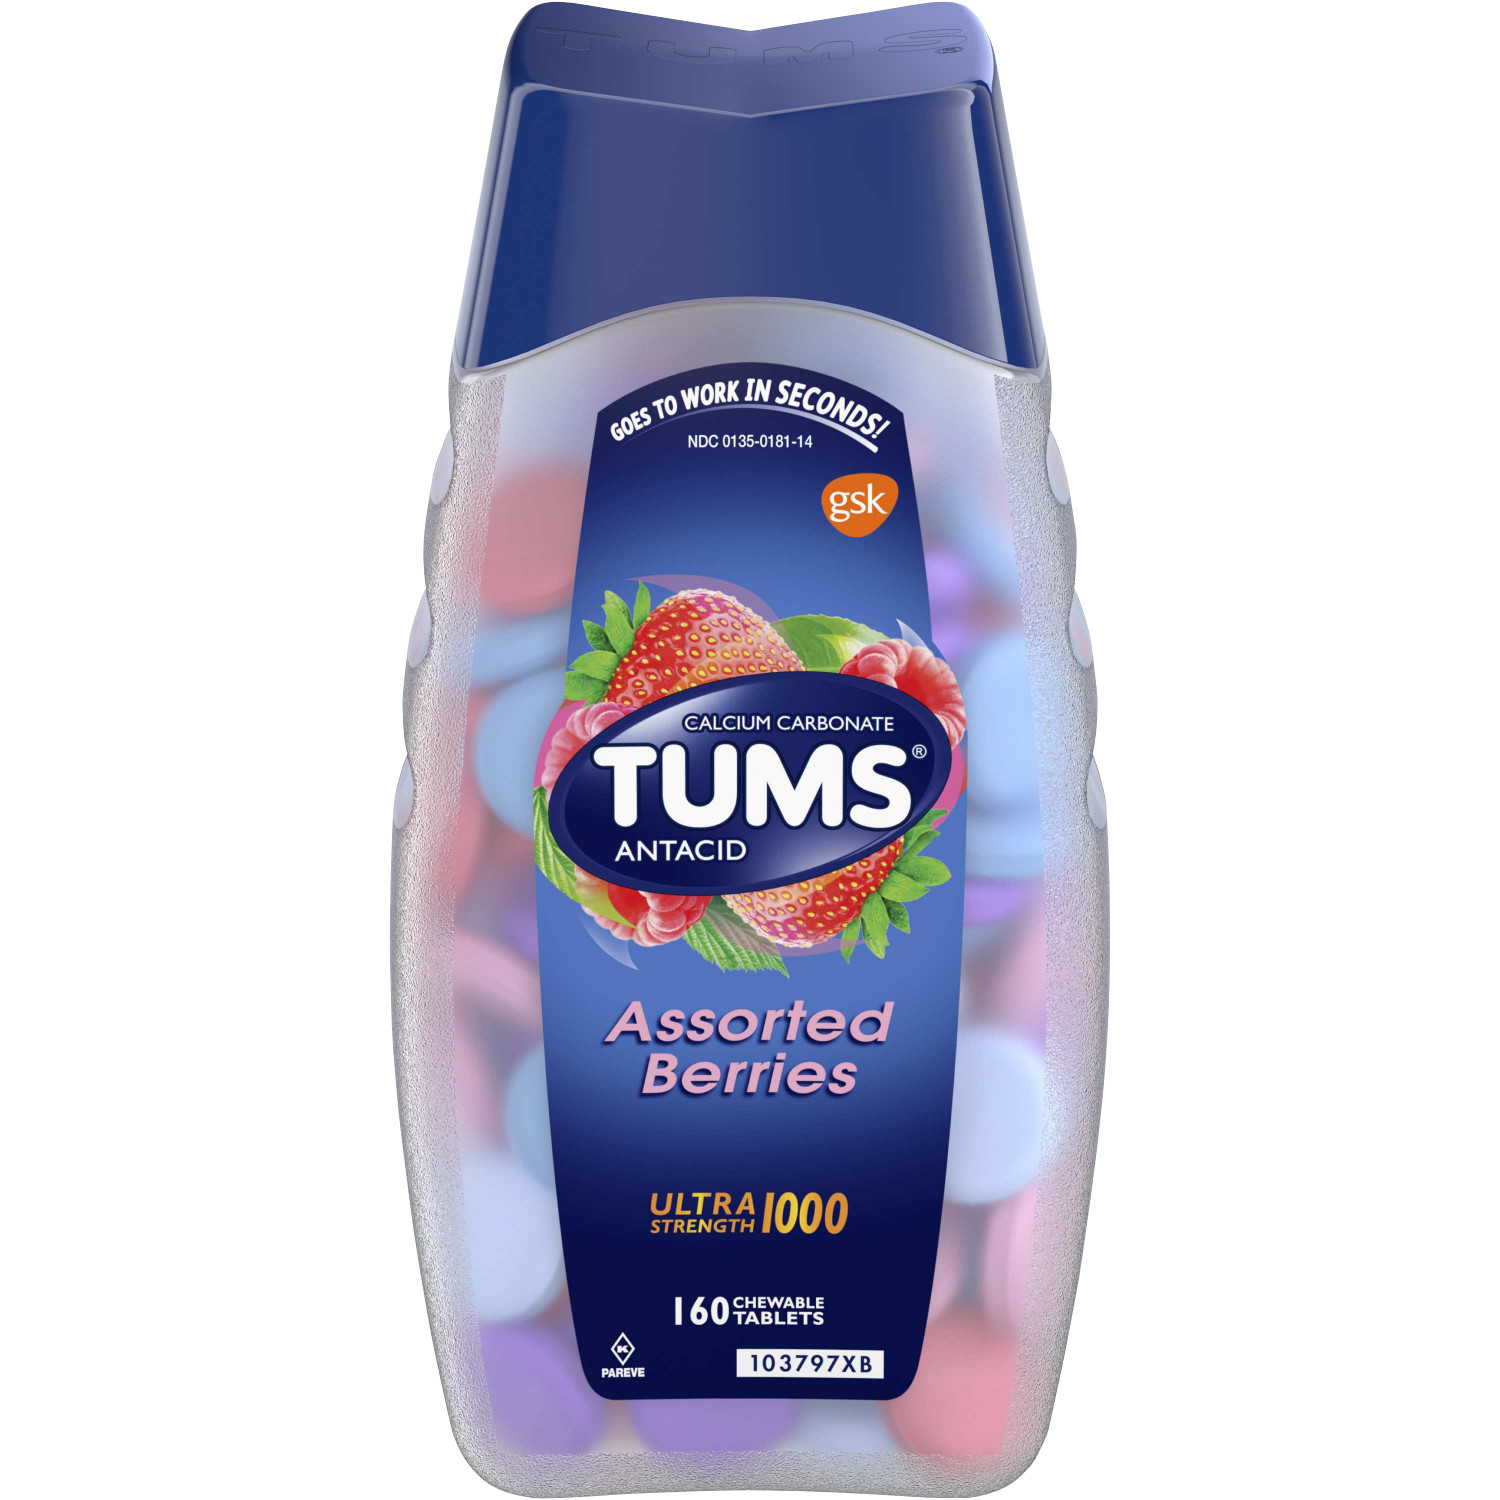 TUMS Antacid Chewable Tablets for Heartburn Relief, Ultra Strength, Assorted Berries, 160 Tablets